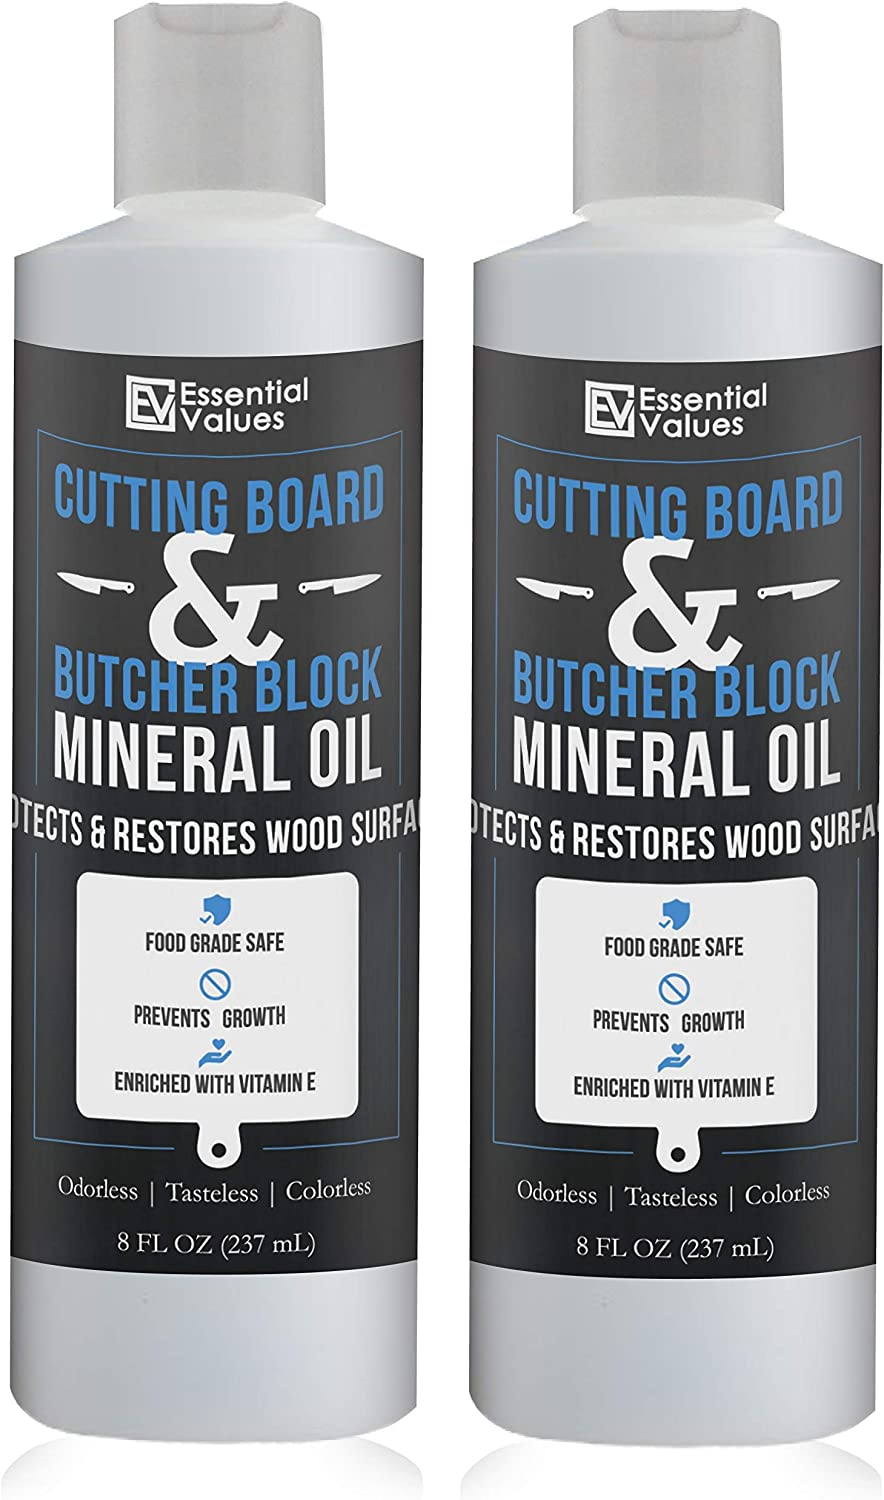 Essential Values (2 Pack) Cutting Board & Butcher Block Mineral Oil (8 fl oz) – Perfect for Protecting & Restoring Wood Surfaces, Compatible with All Wood Types & Food Grade Safe, Proudly Made in USA